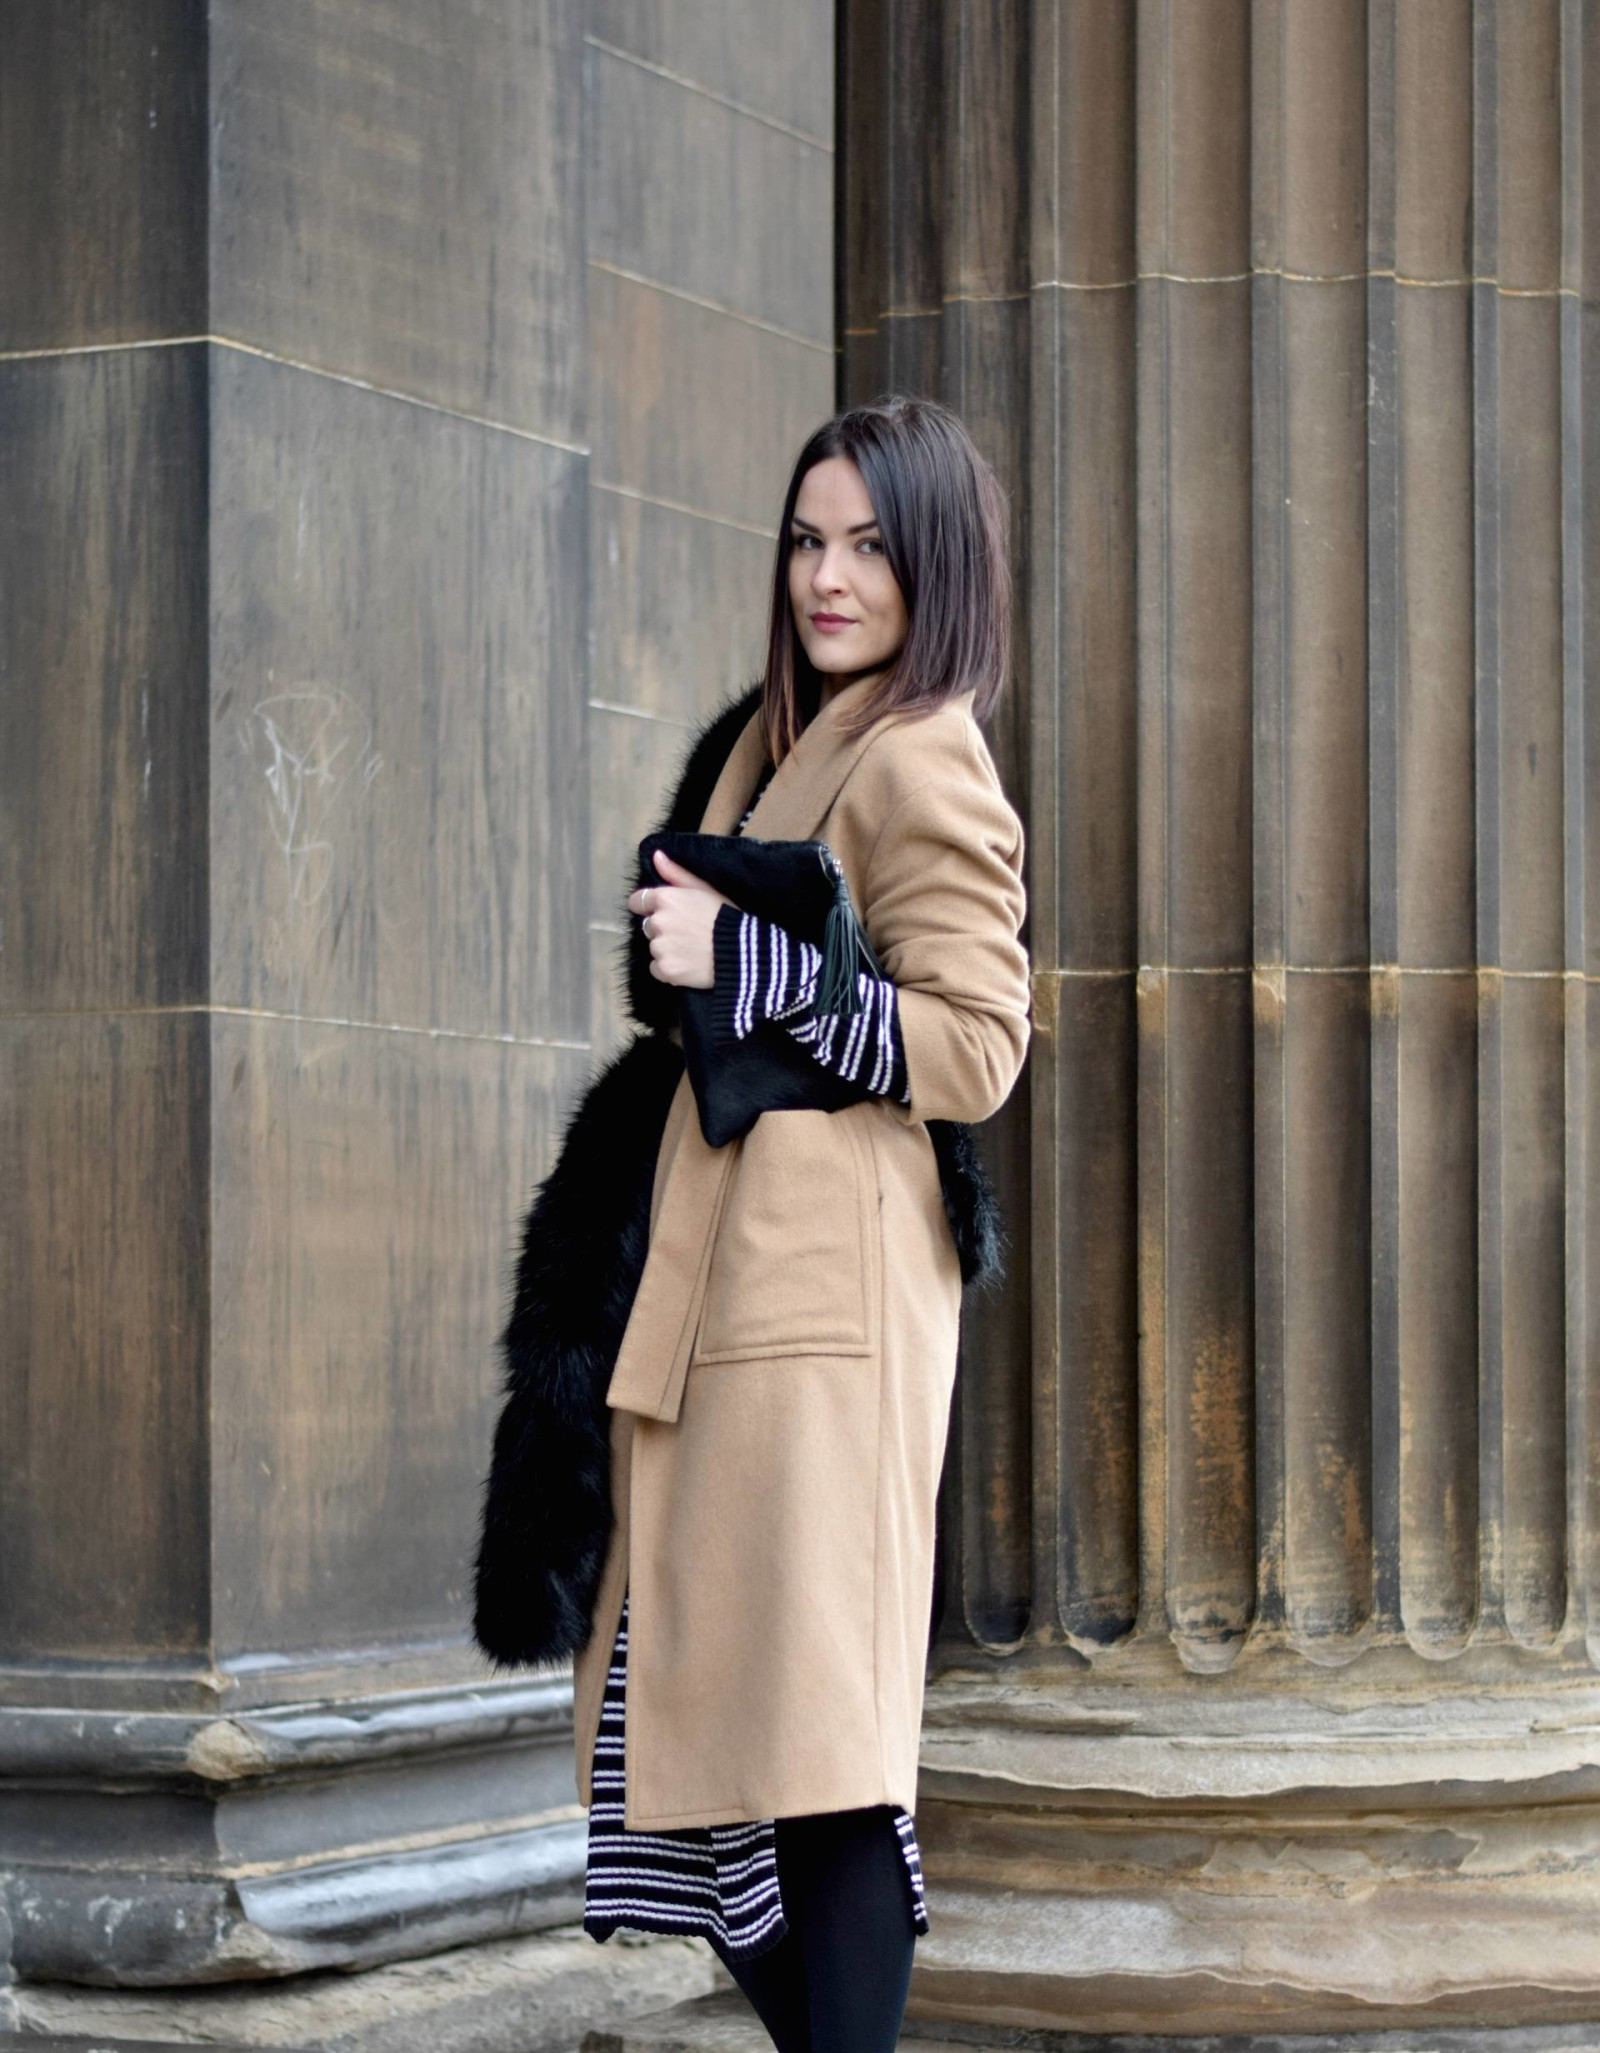 Striped H&M Dress and Camel Coat - LAFOTKA Fashion BLogger76